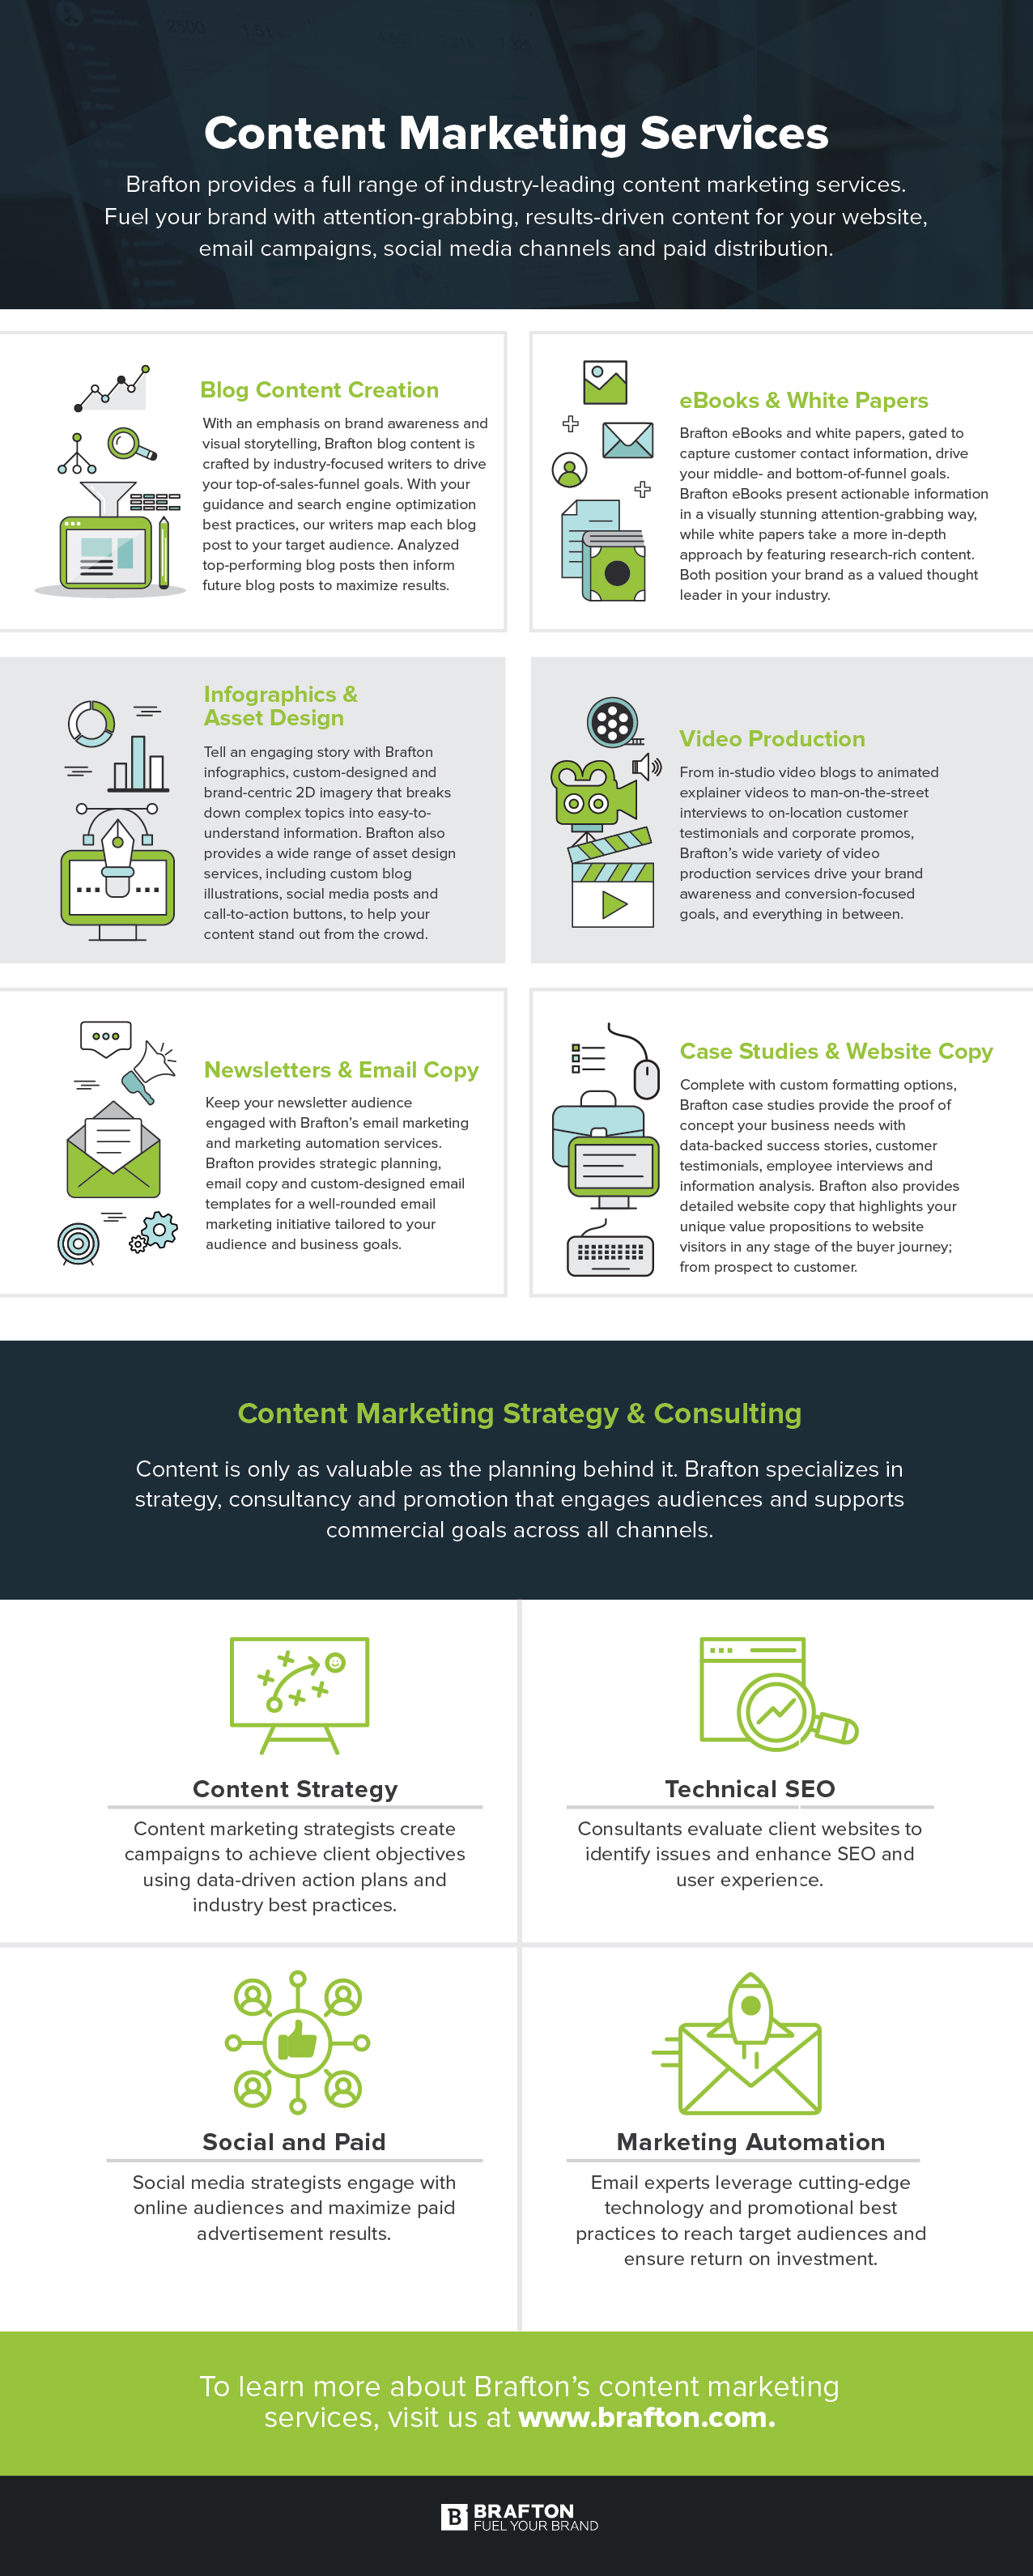 Brafton content marketing services infographic